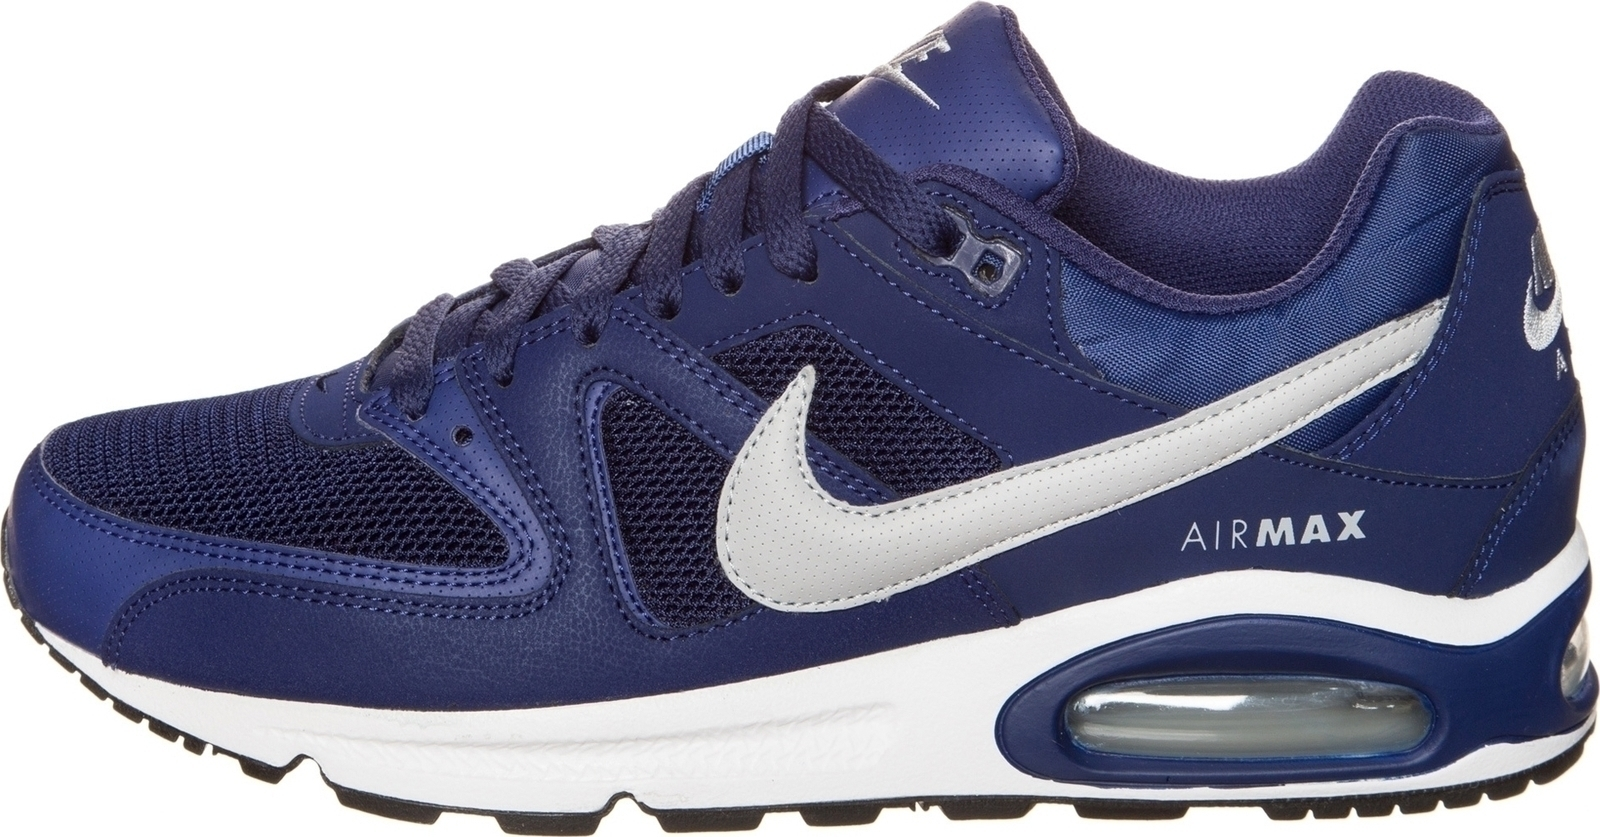 best loved d3521 b39ad spain nike womens lunarglide 6 running shoes clearance usaclassic styles  usalow price nike zoom pegasus 31 skroutz ff7c1 396d8  cheapest nike air  max ...